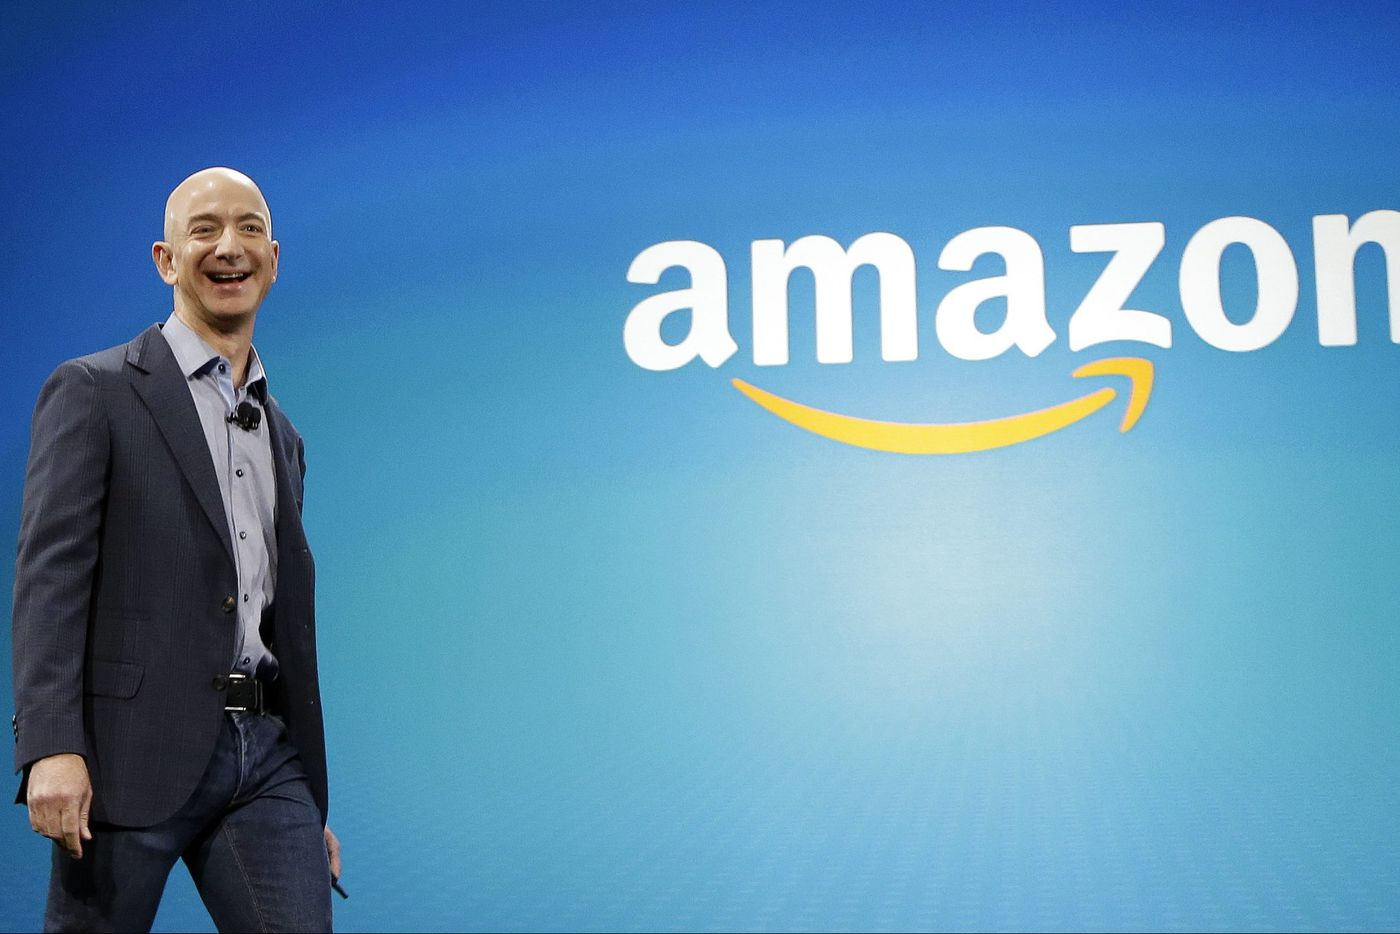 Amazon's CEO Starts $2 Billion Fund for Schools, Homeless